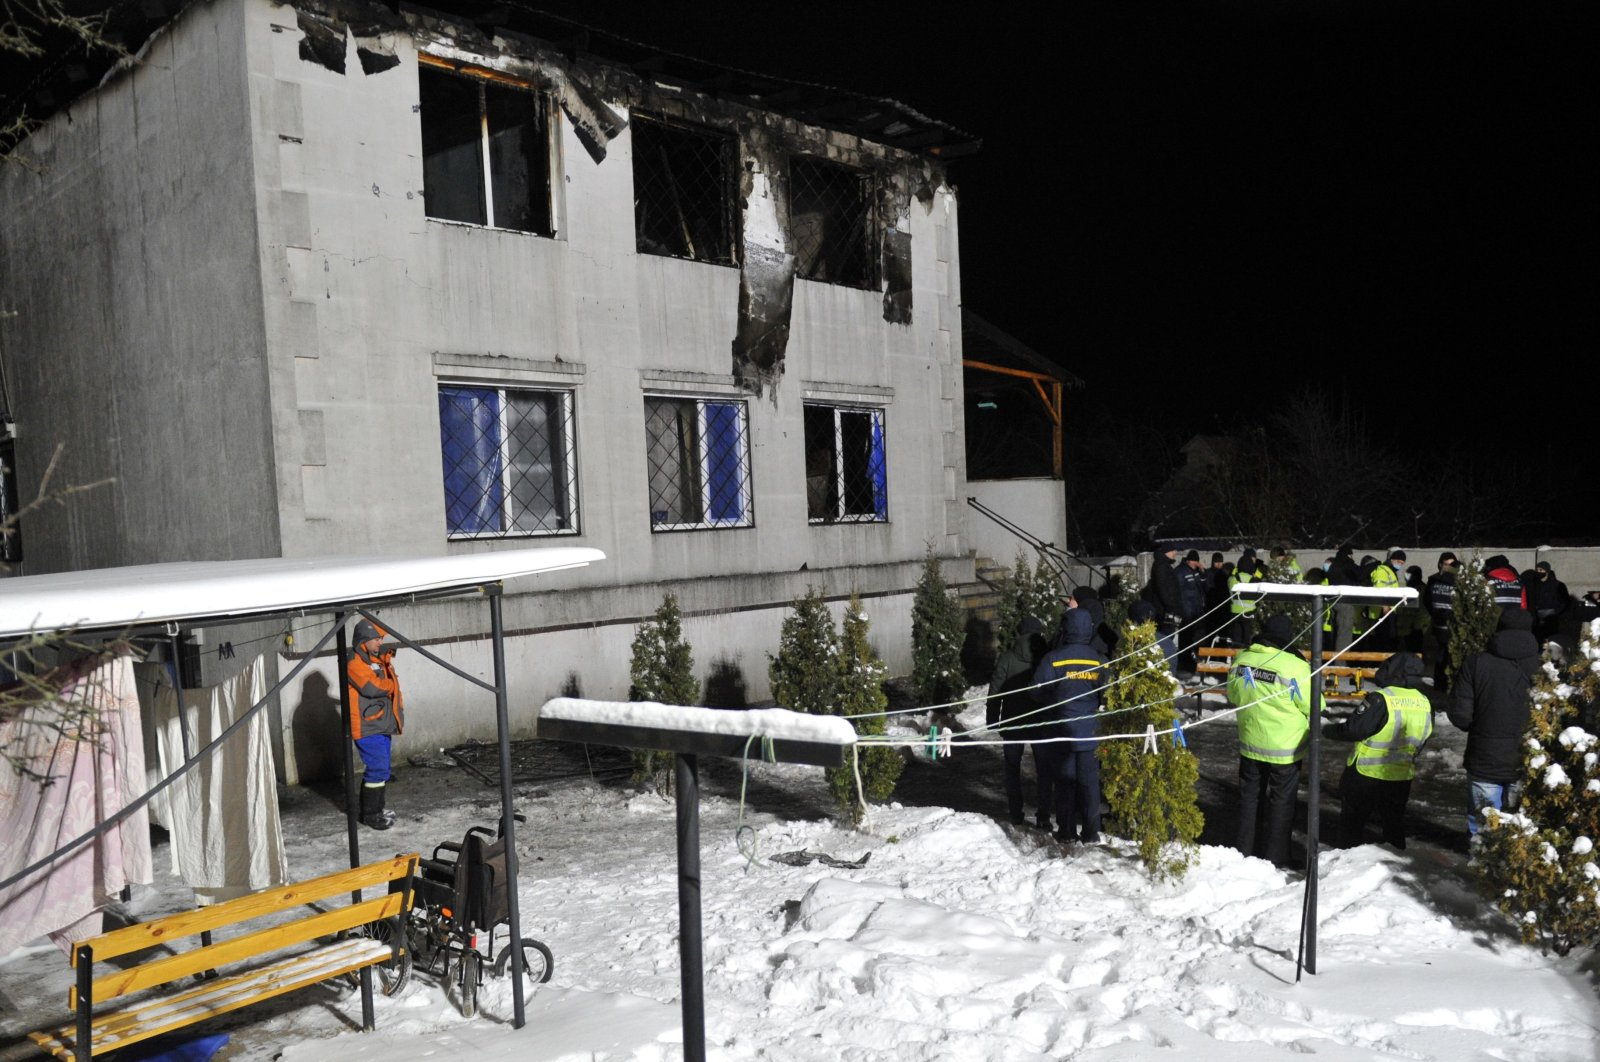 Police experts and members of emergency services work on the the site of a fire that broke out in a nursing home, in Kharkiv, Ukraine, Jan. 21, 2021. (AFP Photo)